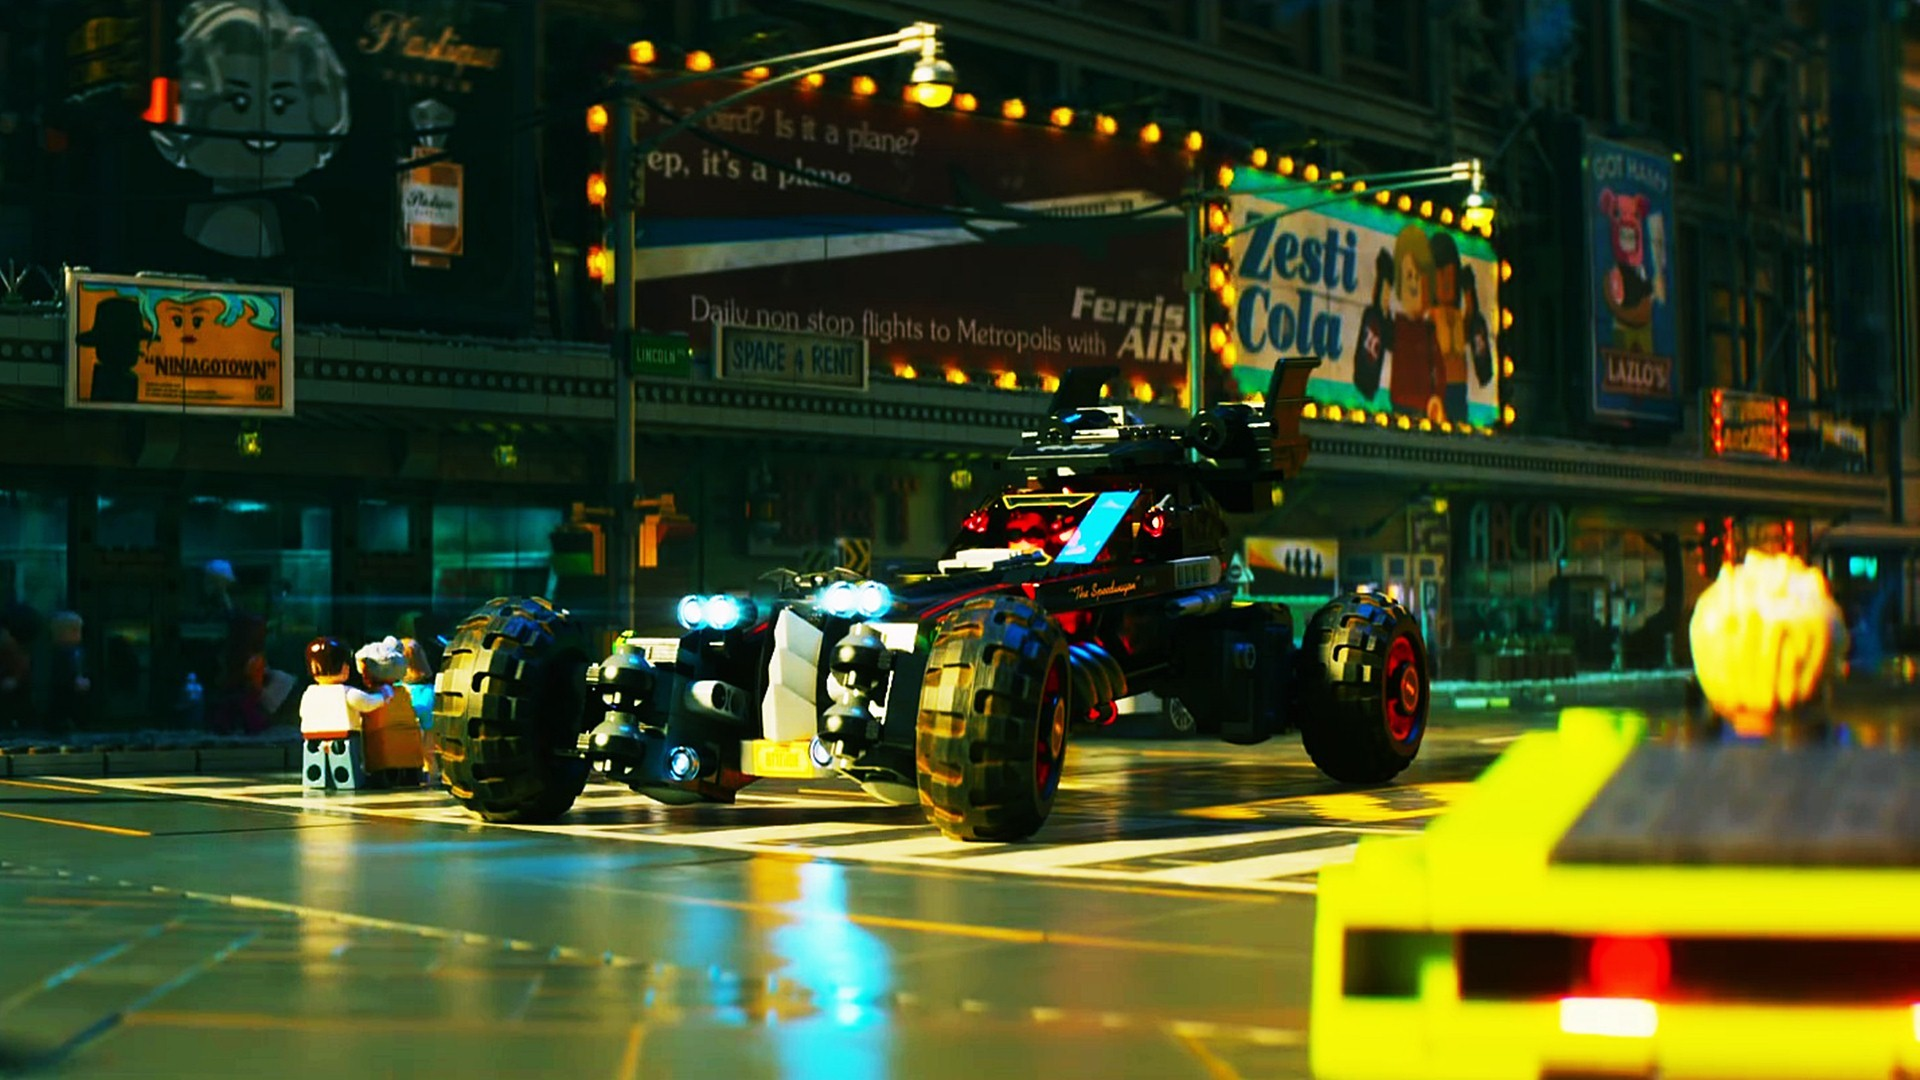 Country Girl Wallpaper For Iphone The Lego Batman Movie Wallpapers 80 Images